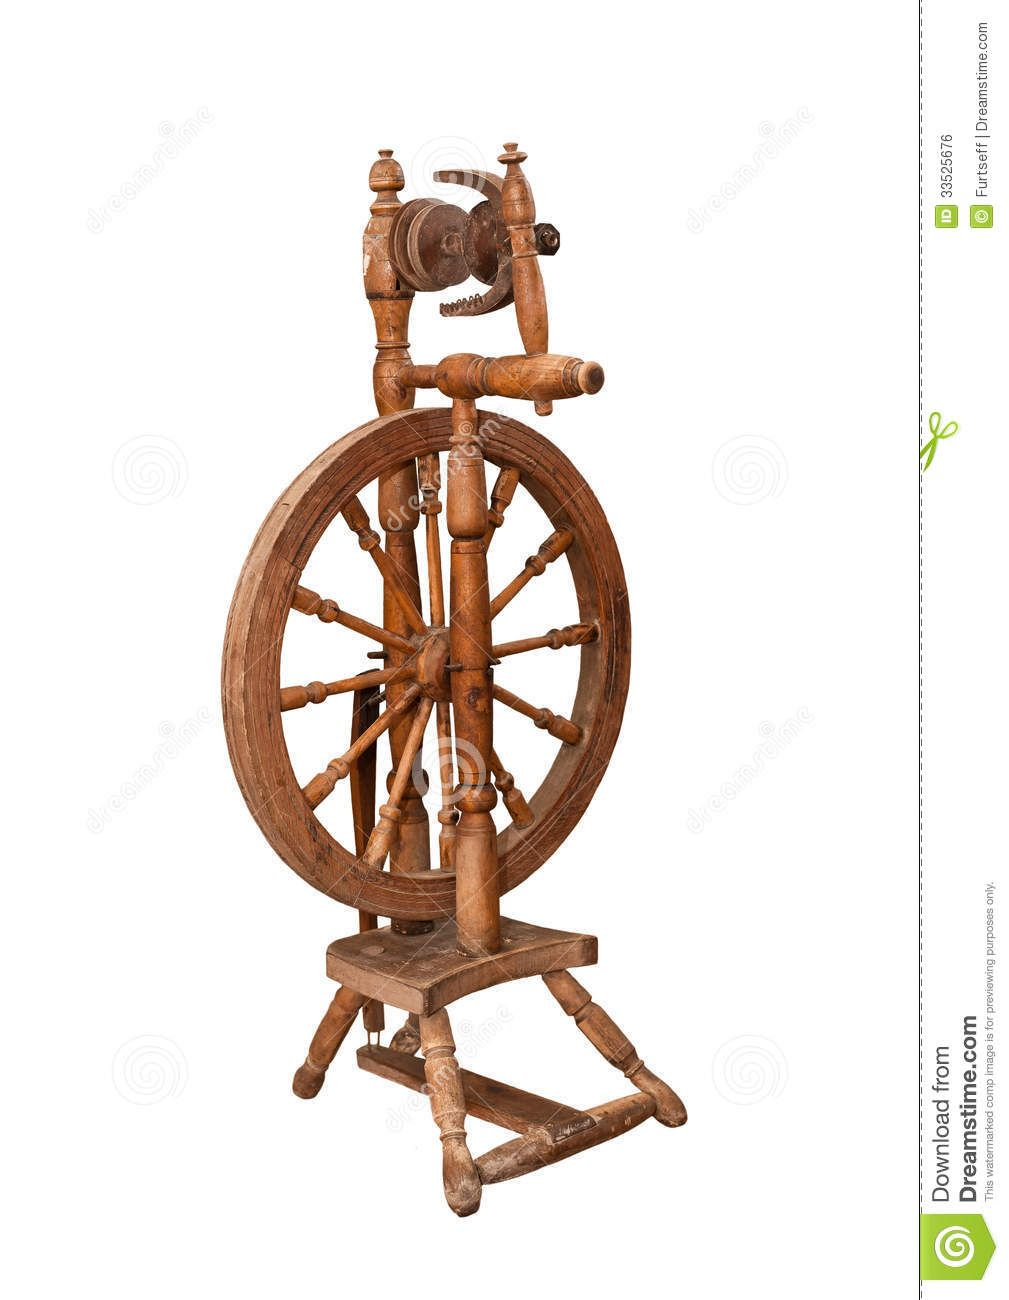 Anatomy of a Spinning Wheel | Antique Spinning Wheel Related ...